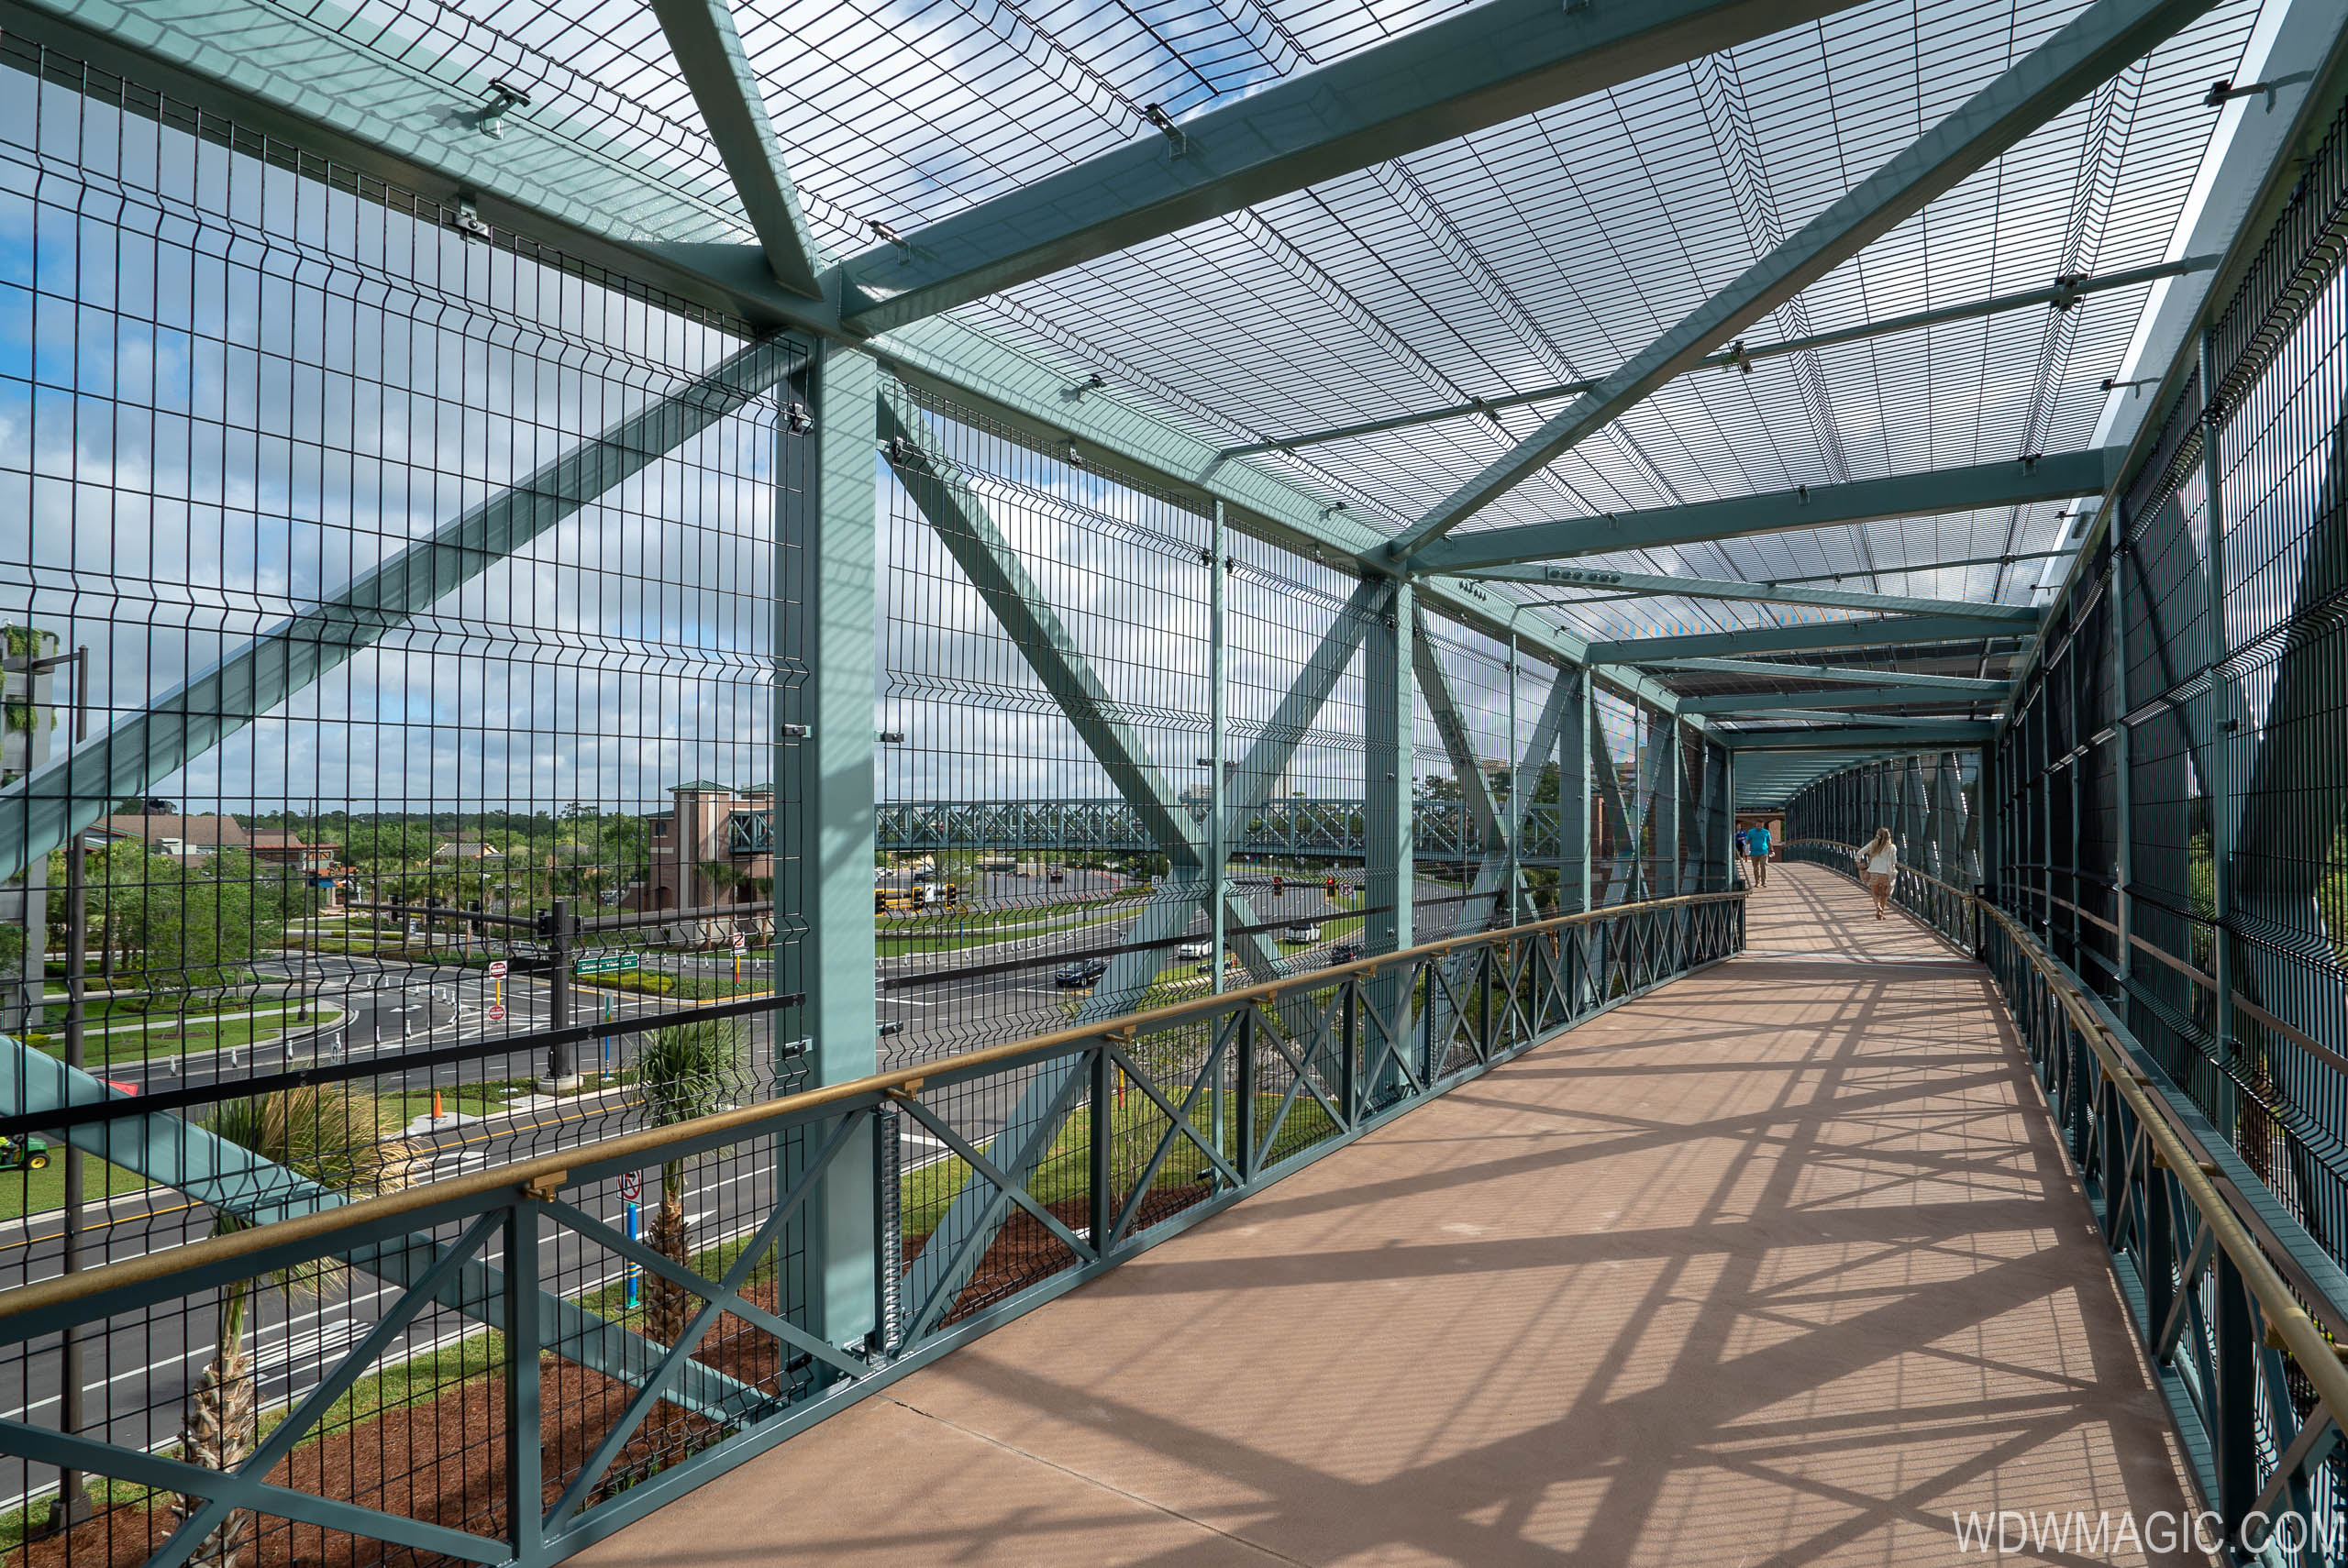 Grapefruit Pedestrian bridge